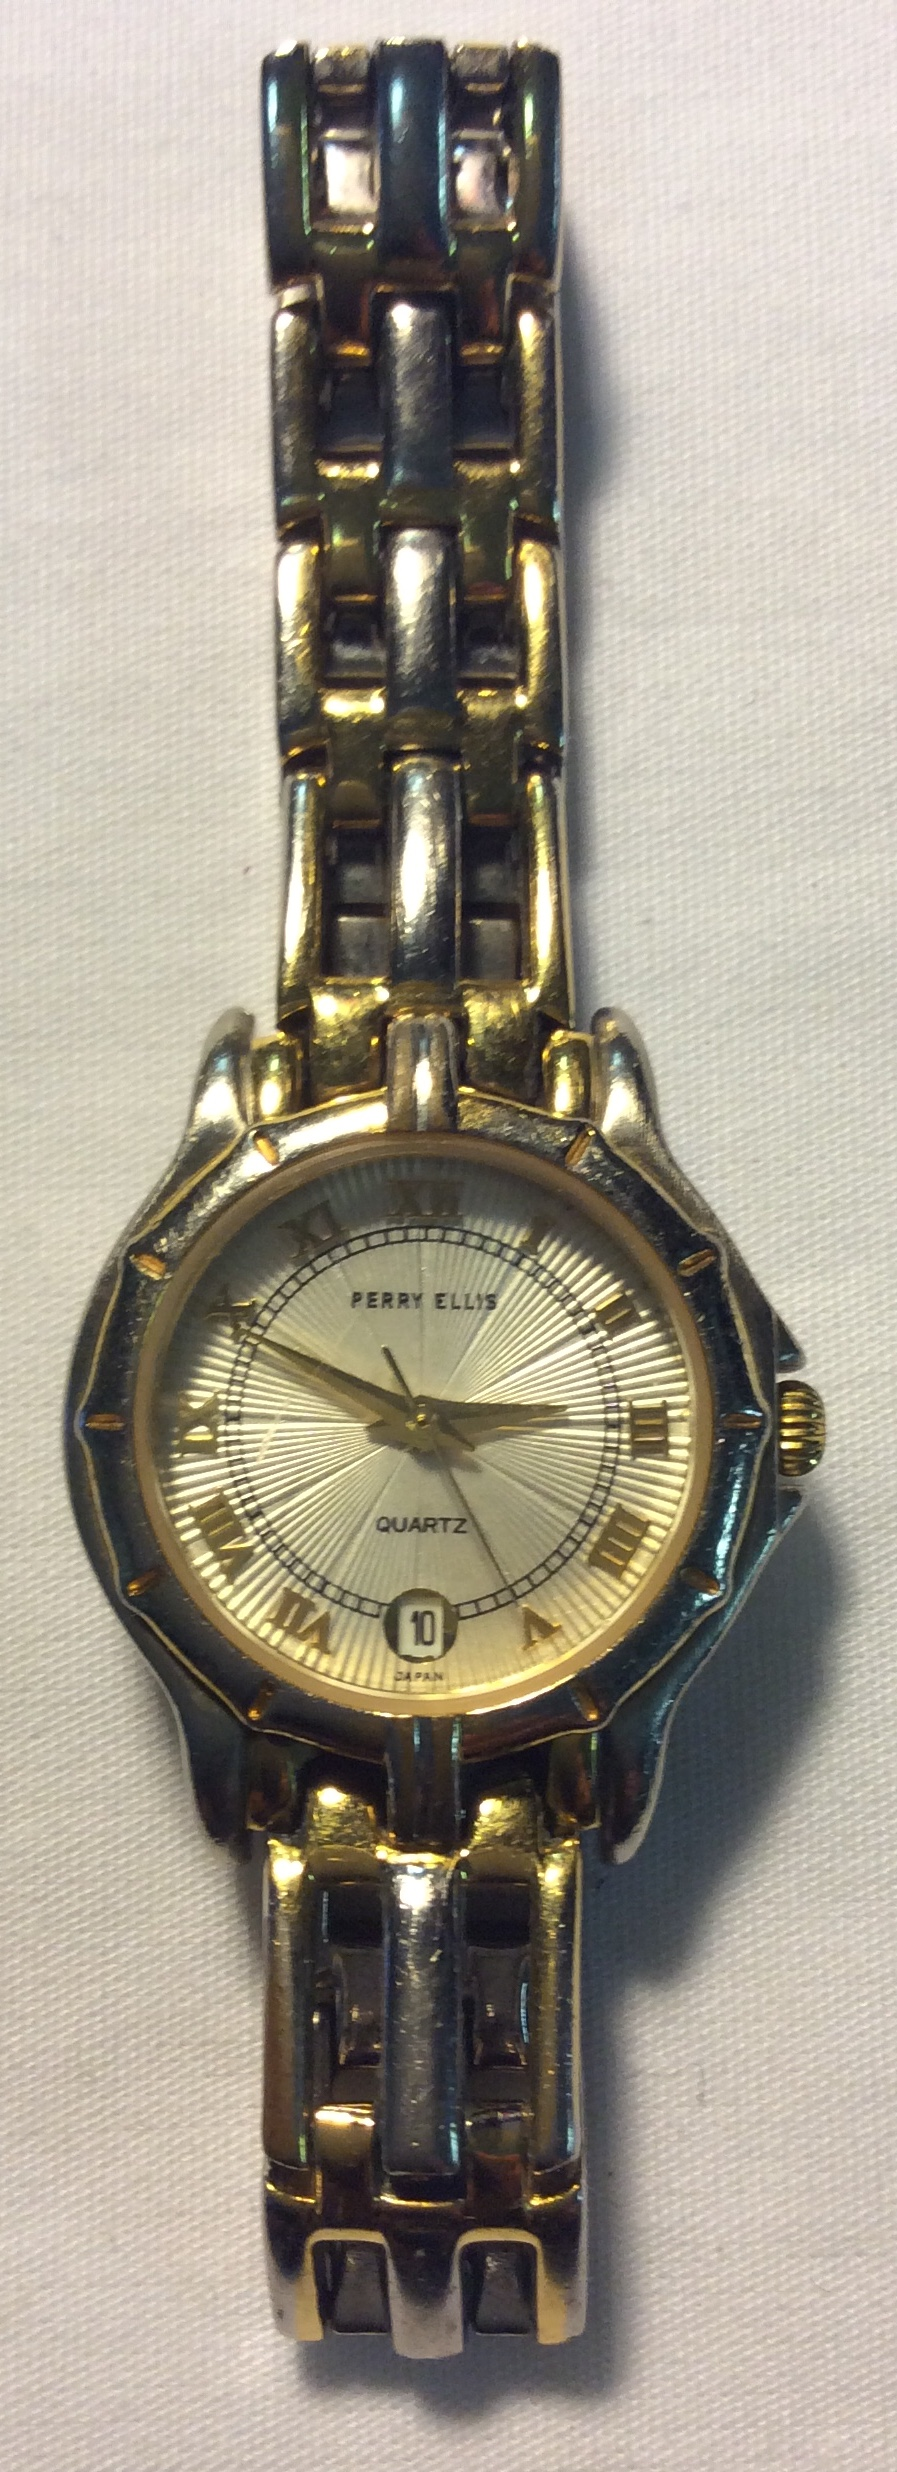 Perry Ellis watch - round pearl face